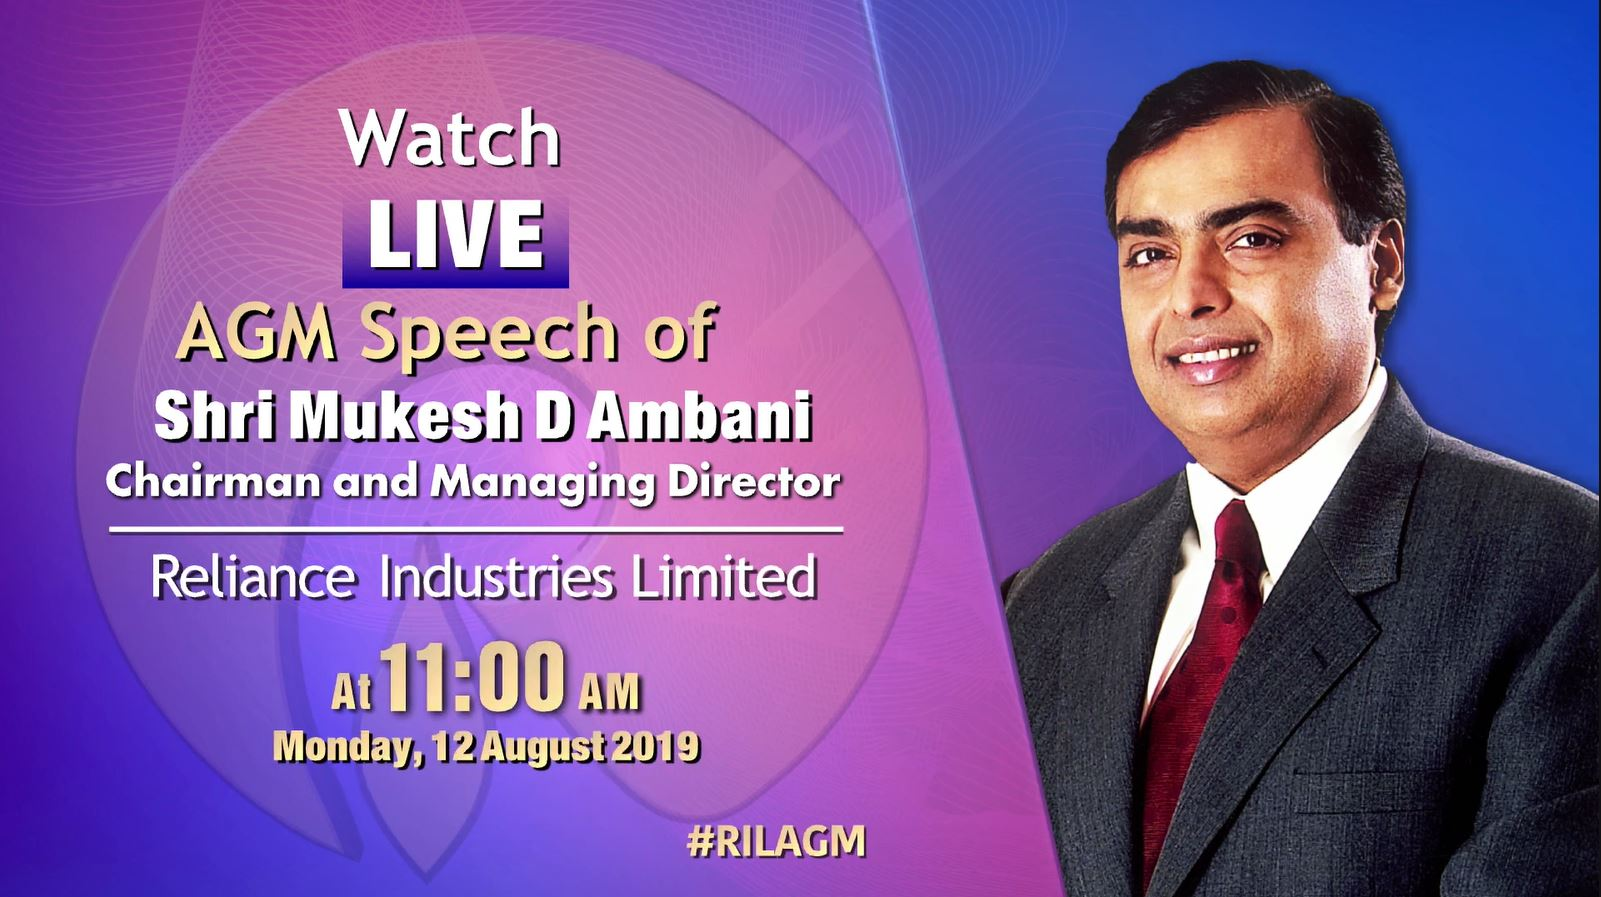 Watch Live: Mukesh Ambani AGM speech to unveil Reliance GigaFiber plans